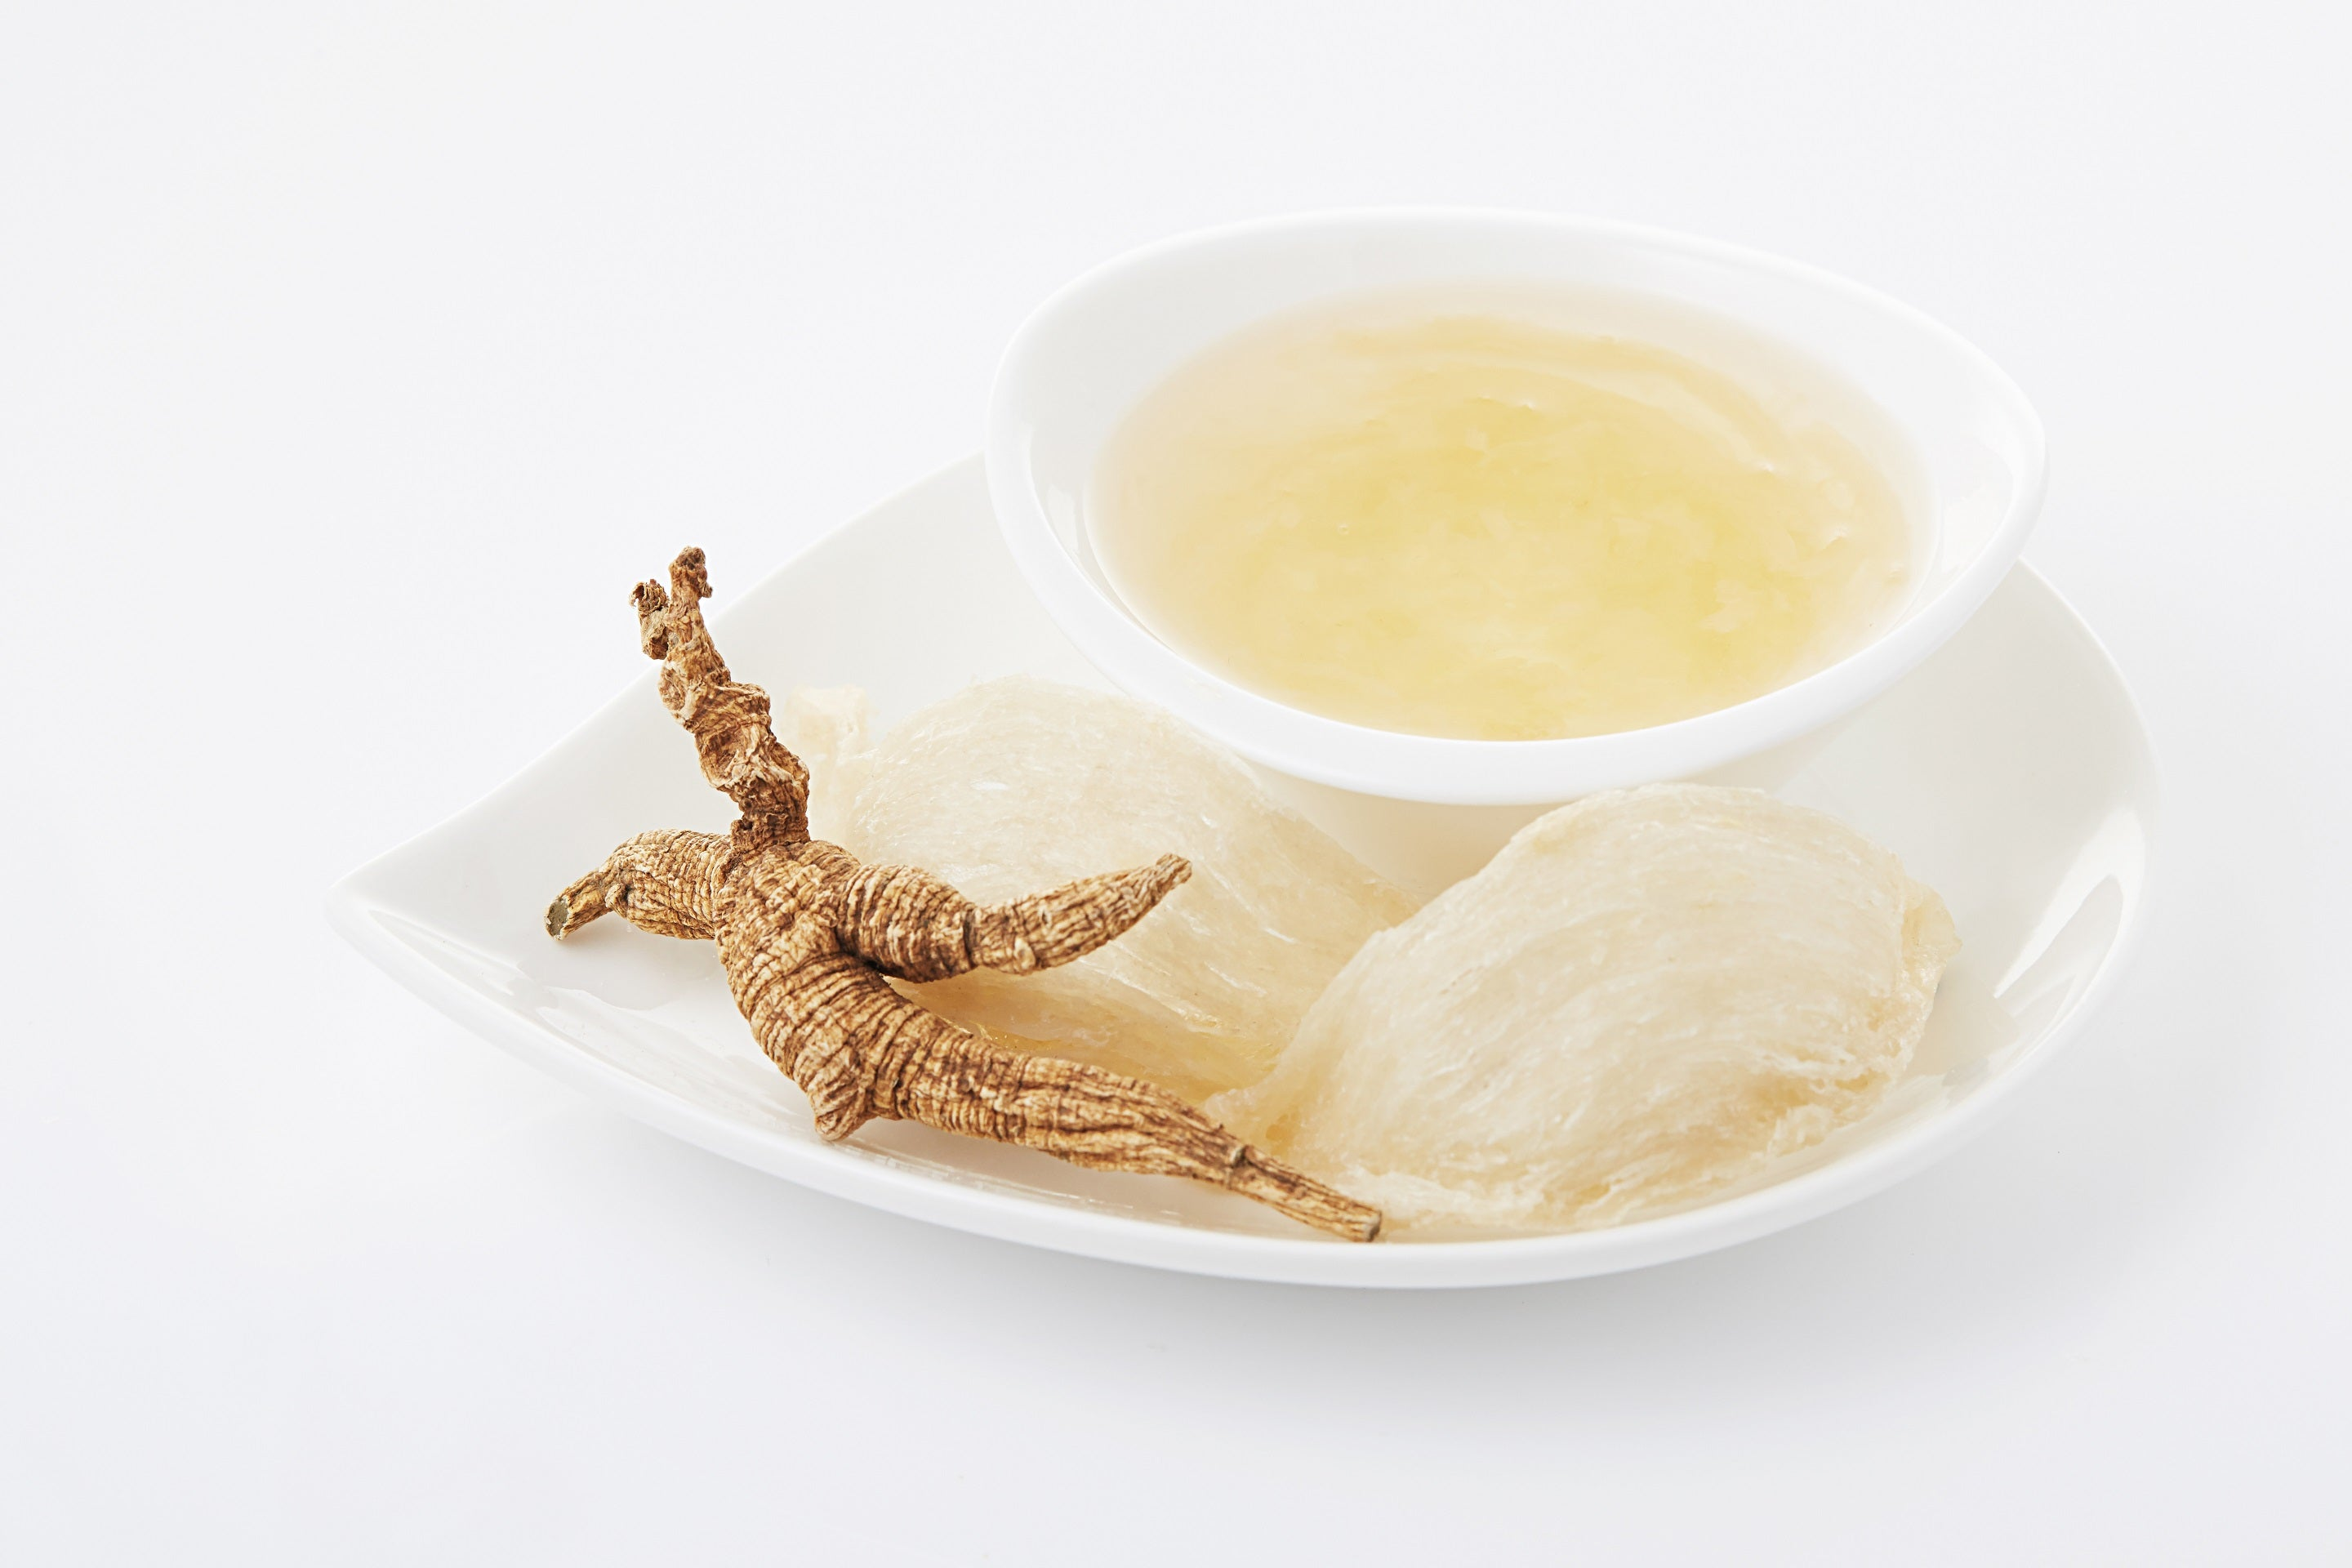 Oceanus Bird Nest with American Ginseng